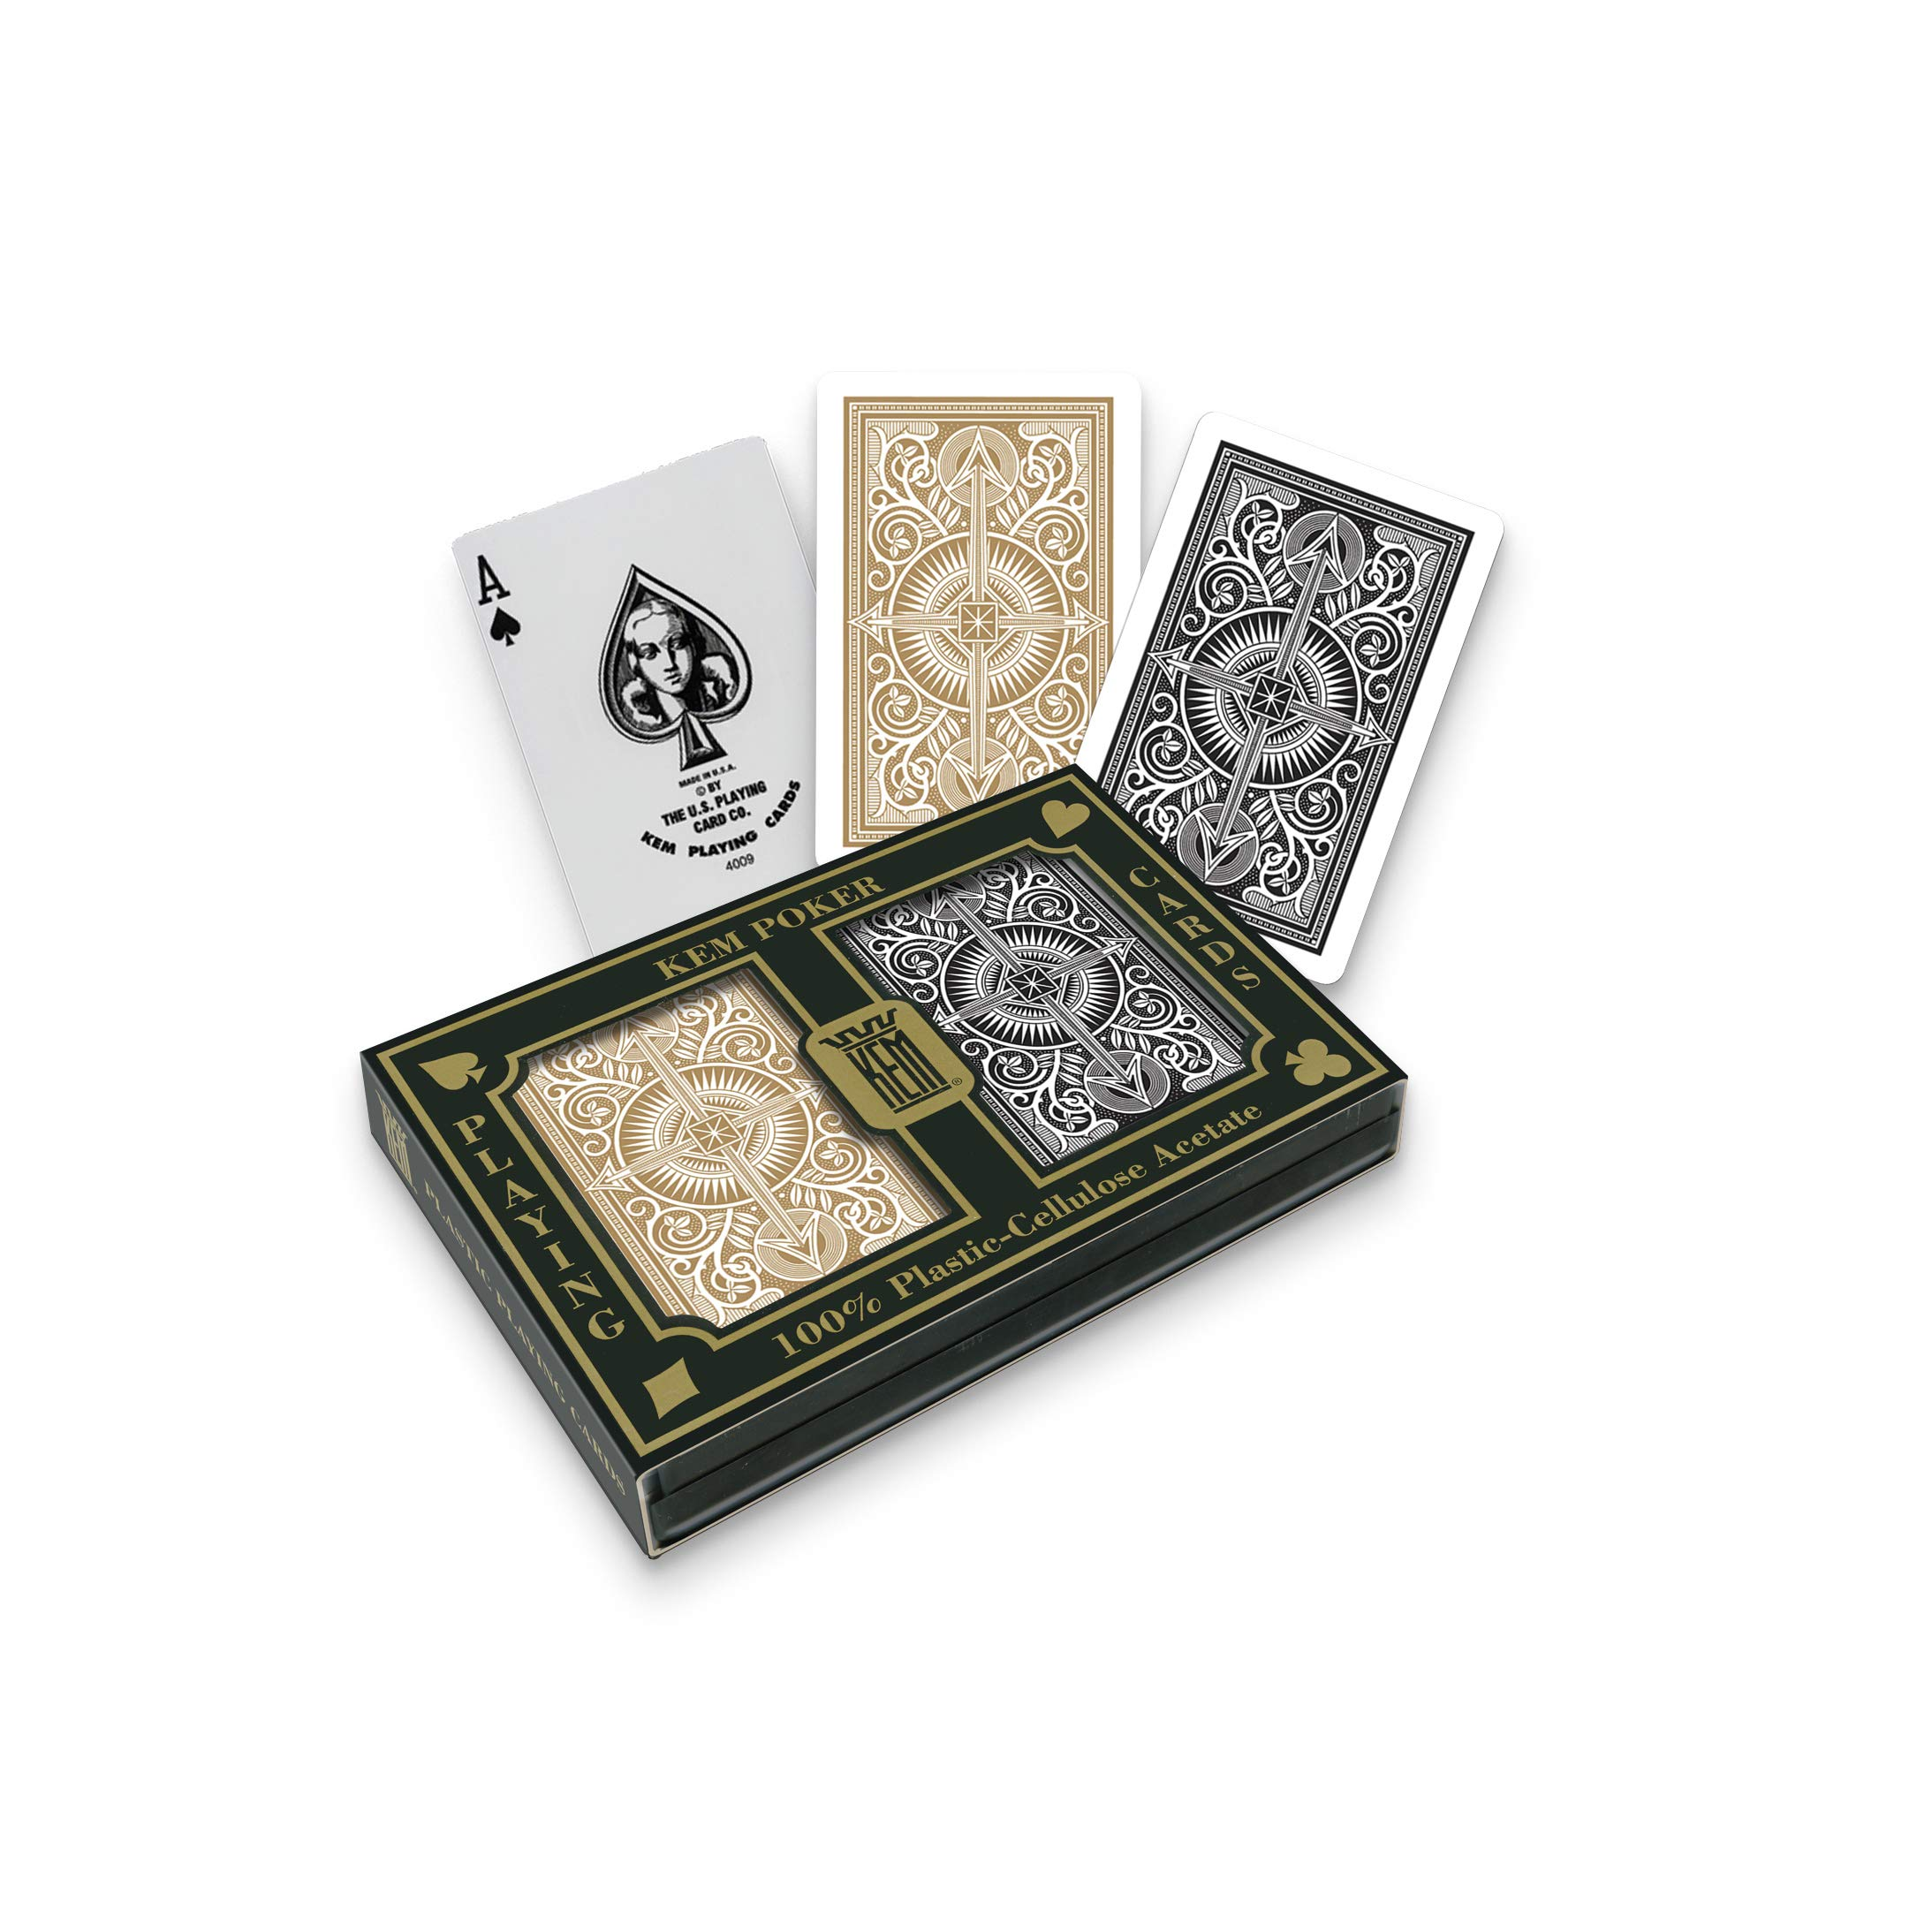 KEM Arrow Black and Gold, Poker Size- Standard Index Playing Cards (Pack of 2) - 1017399 by Kem Playing Cards